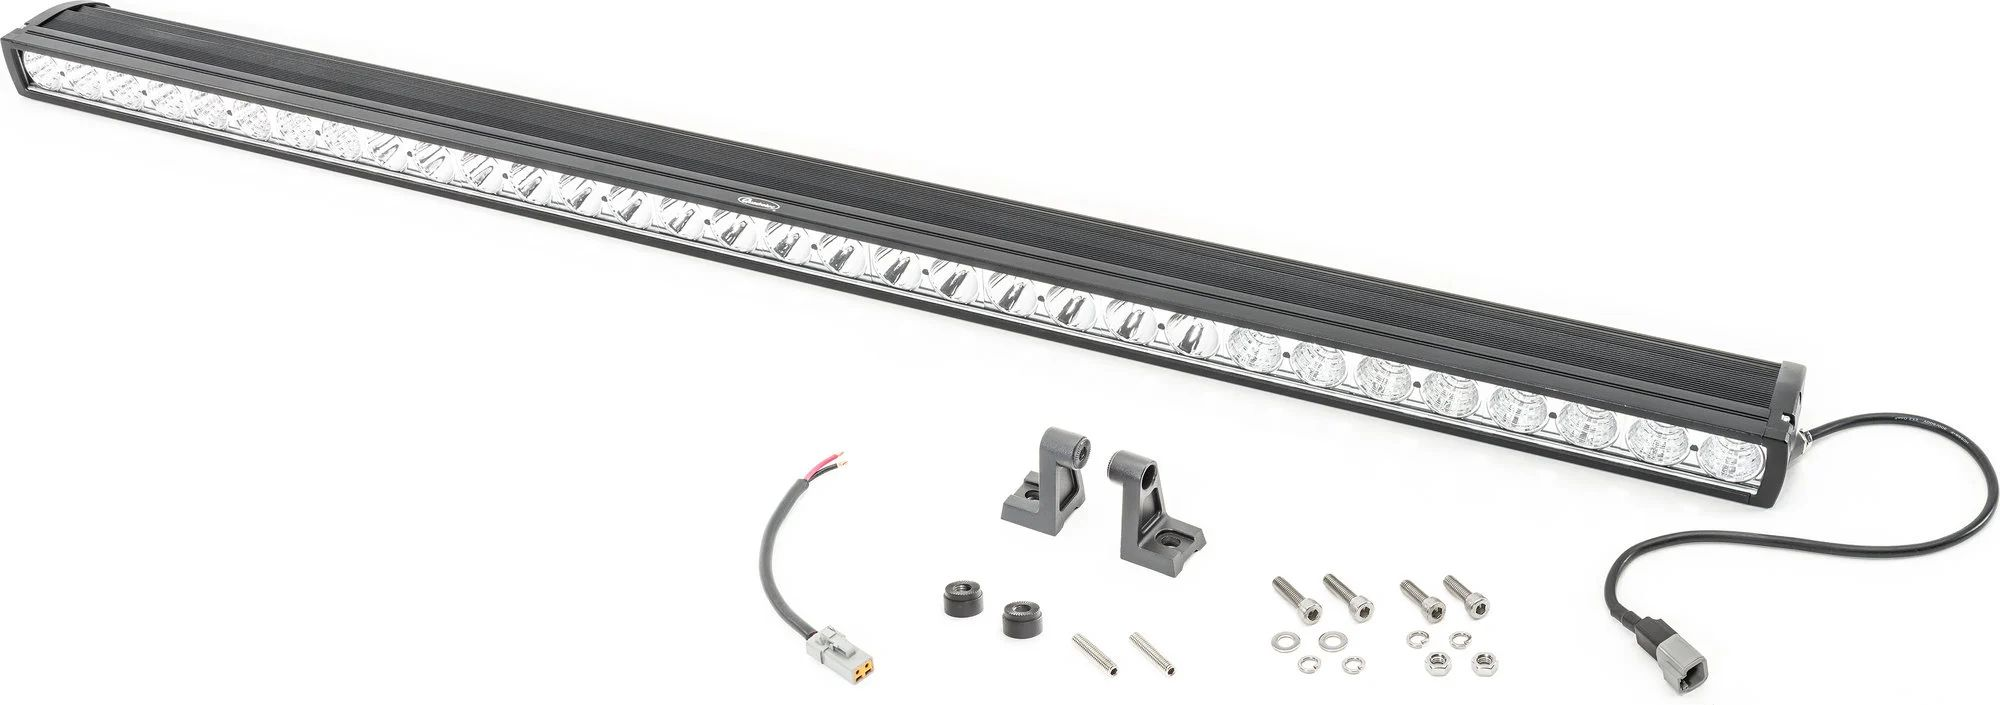 jeep cherokee light bar wiring